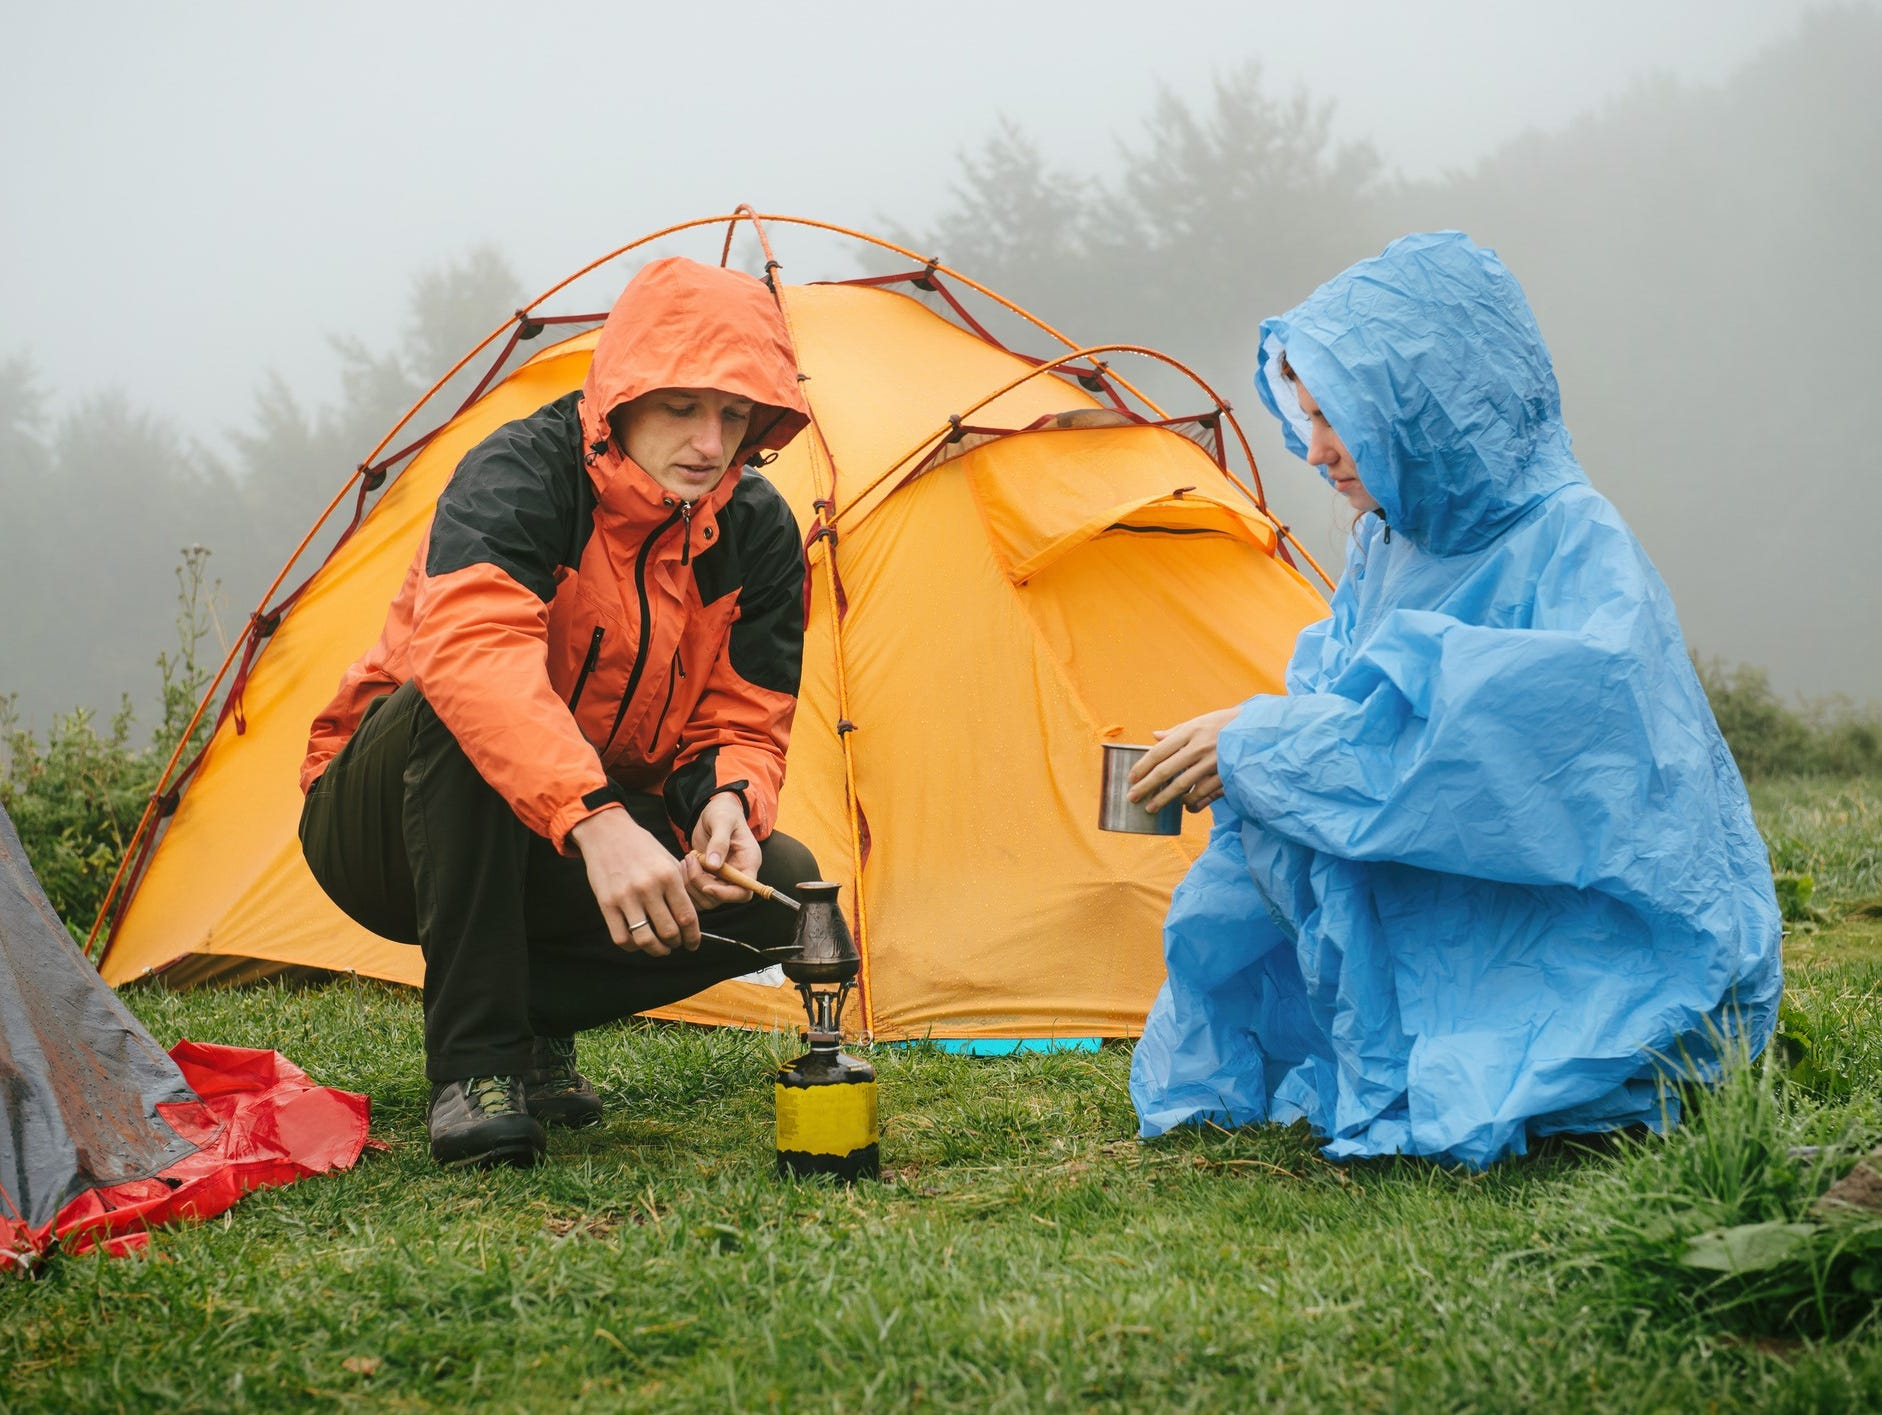 Stay dry Insiders!  Stock up on outdoor gear for Spring at Bass Pro.  Enter 4/3-5/1